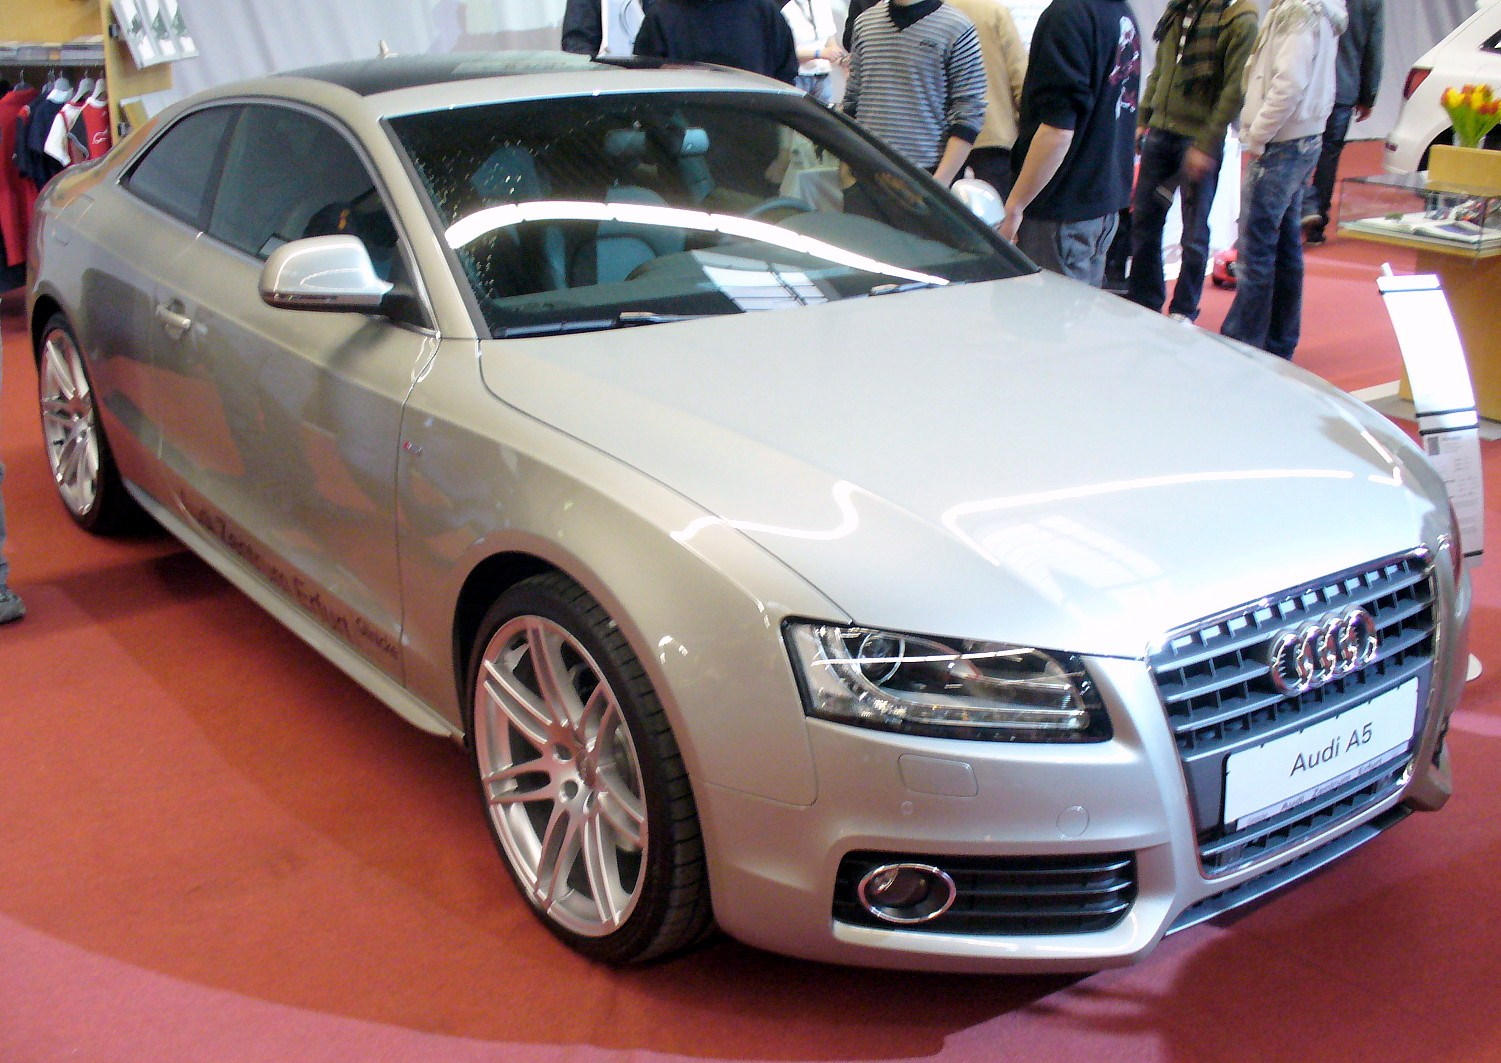 fichier audi a5 coup 2 7 tdi s line jpg wikip dia. Black Bedroom Furniture Sets. Home Design Ideas